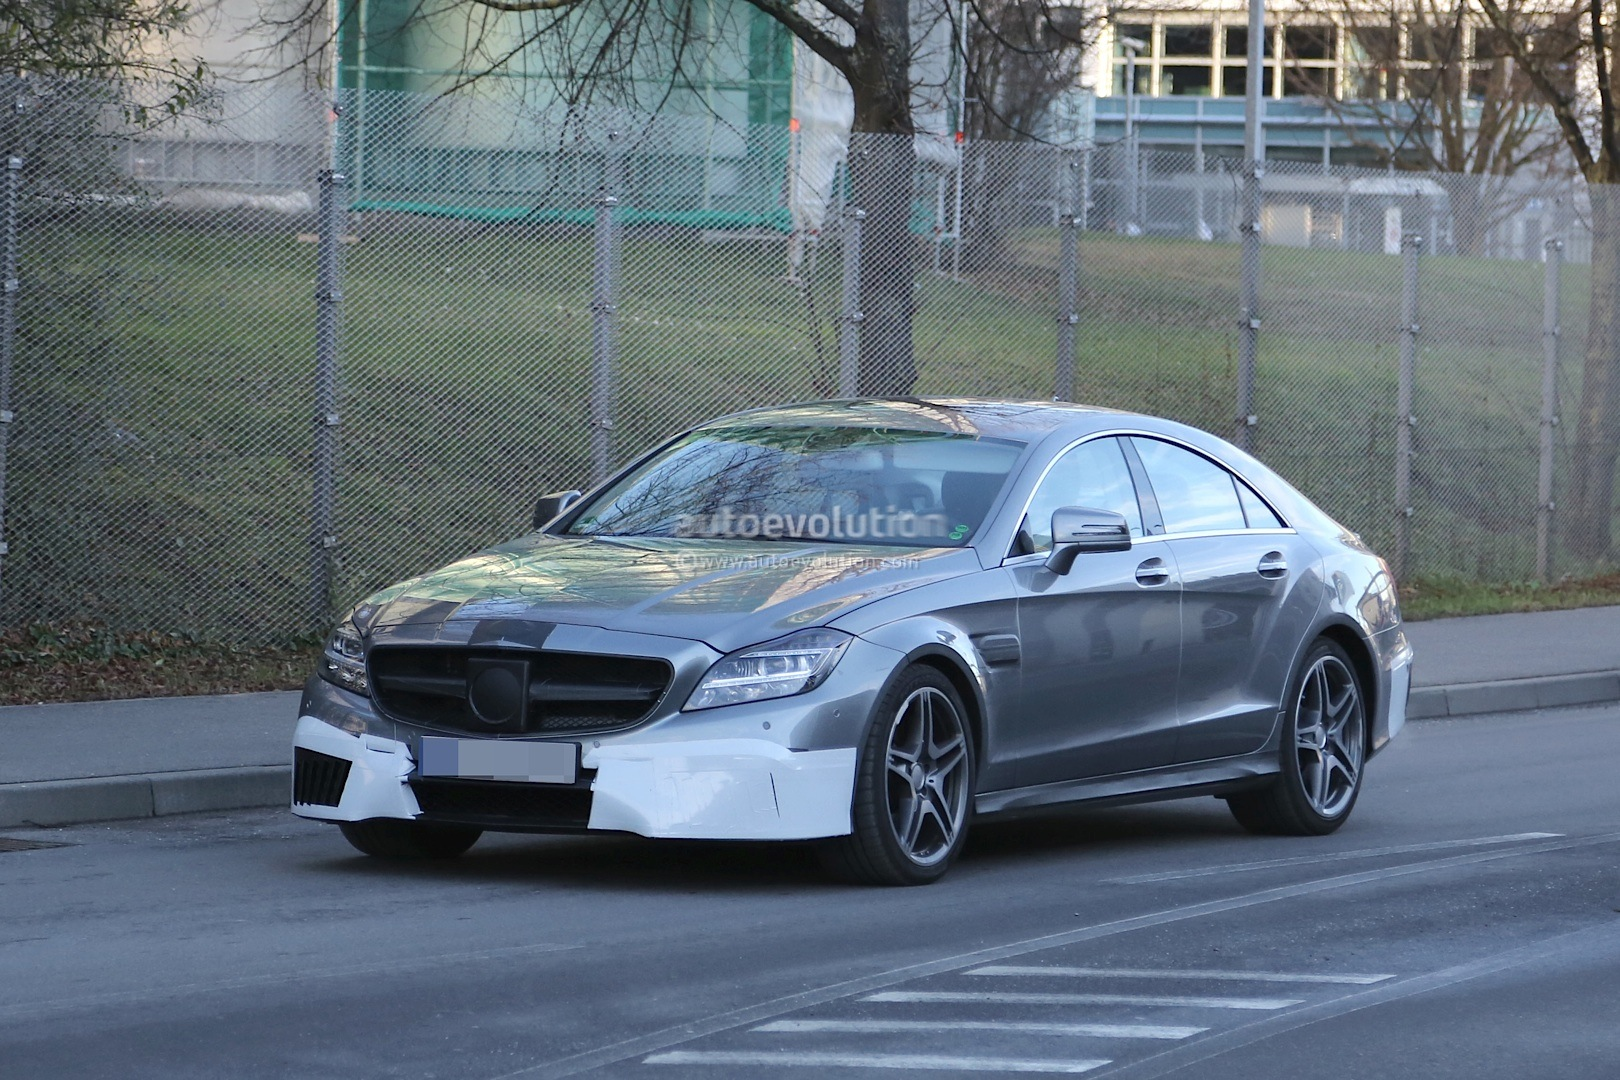 2015 cls 63 amg facelift caught on video in germany. Black Bedroom Furniture Sets. Home Design Ideas